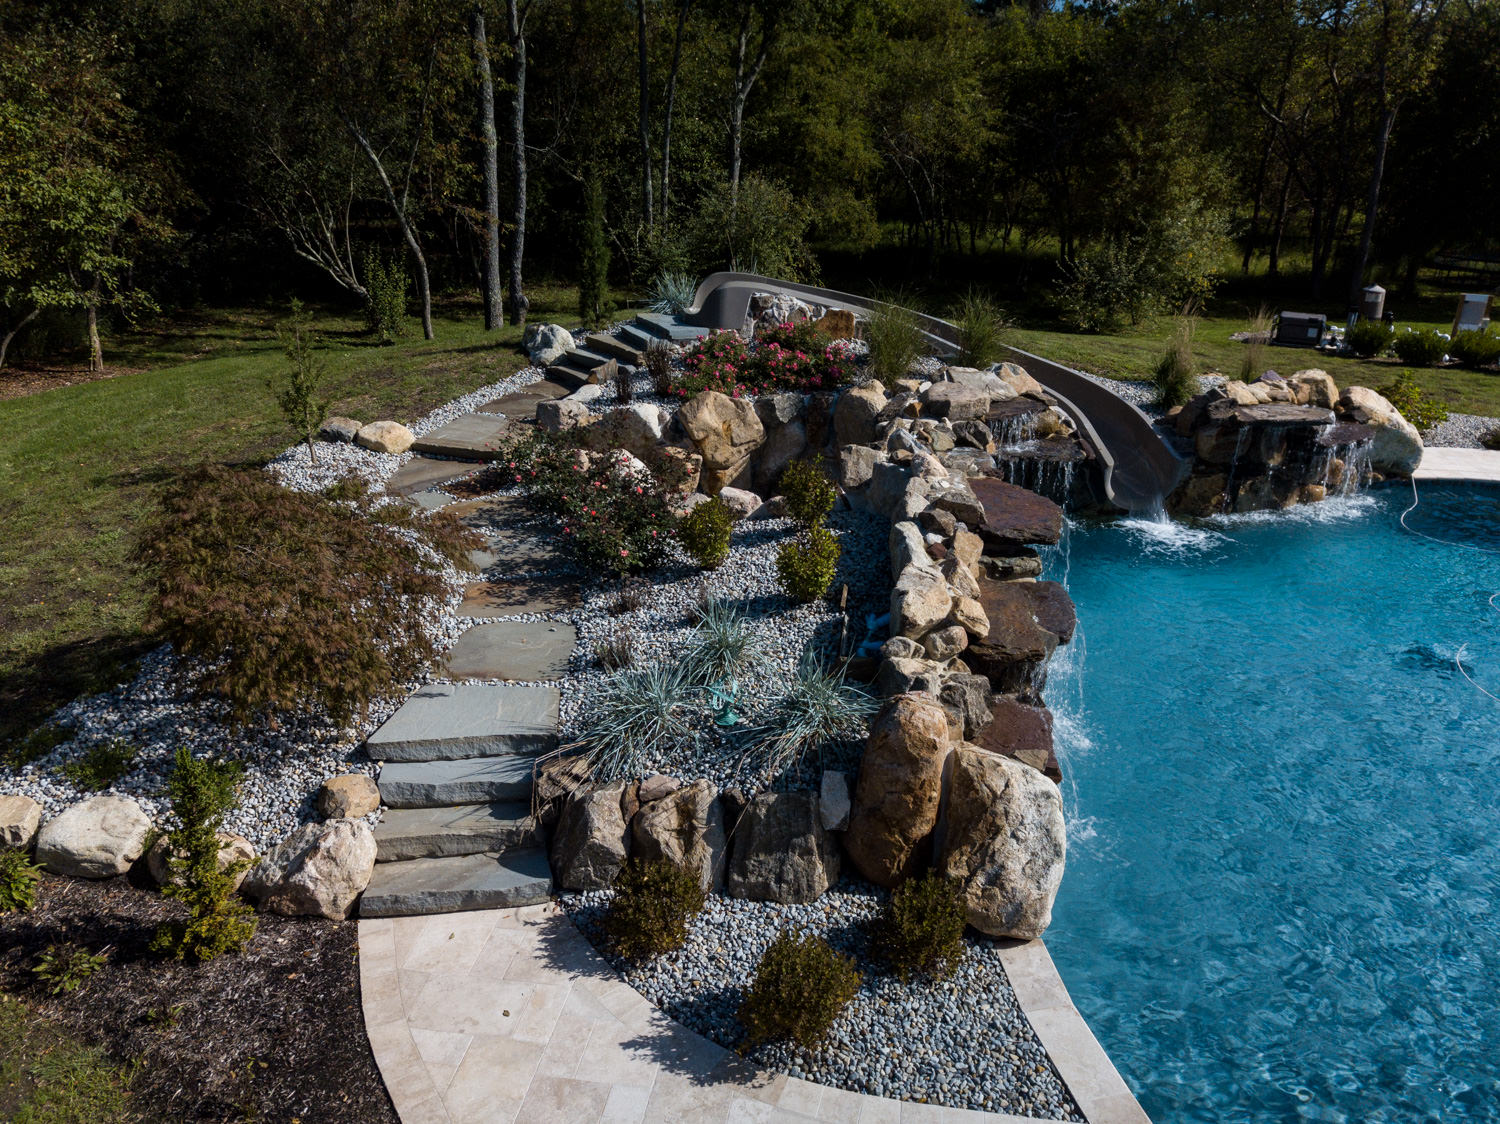 25-Custom-Pool-Design-Pennington-NJ-K-and-C-Land-Design.jpg